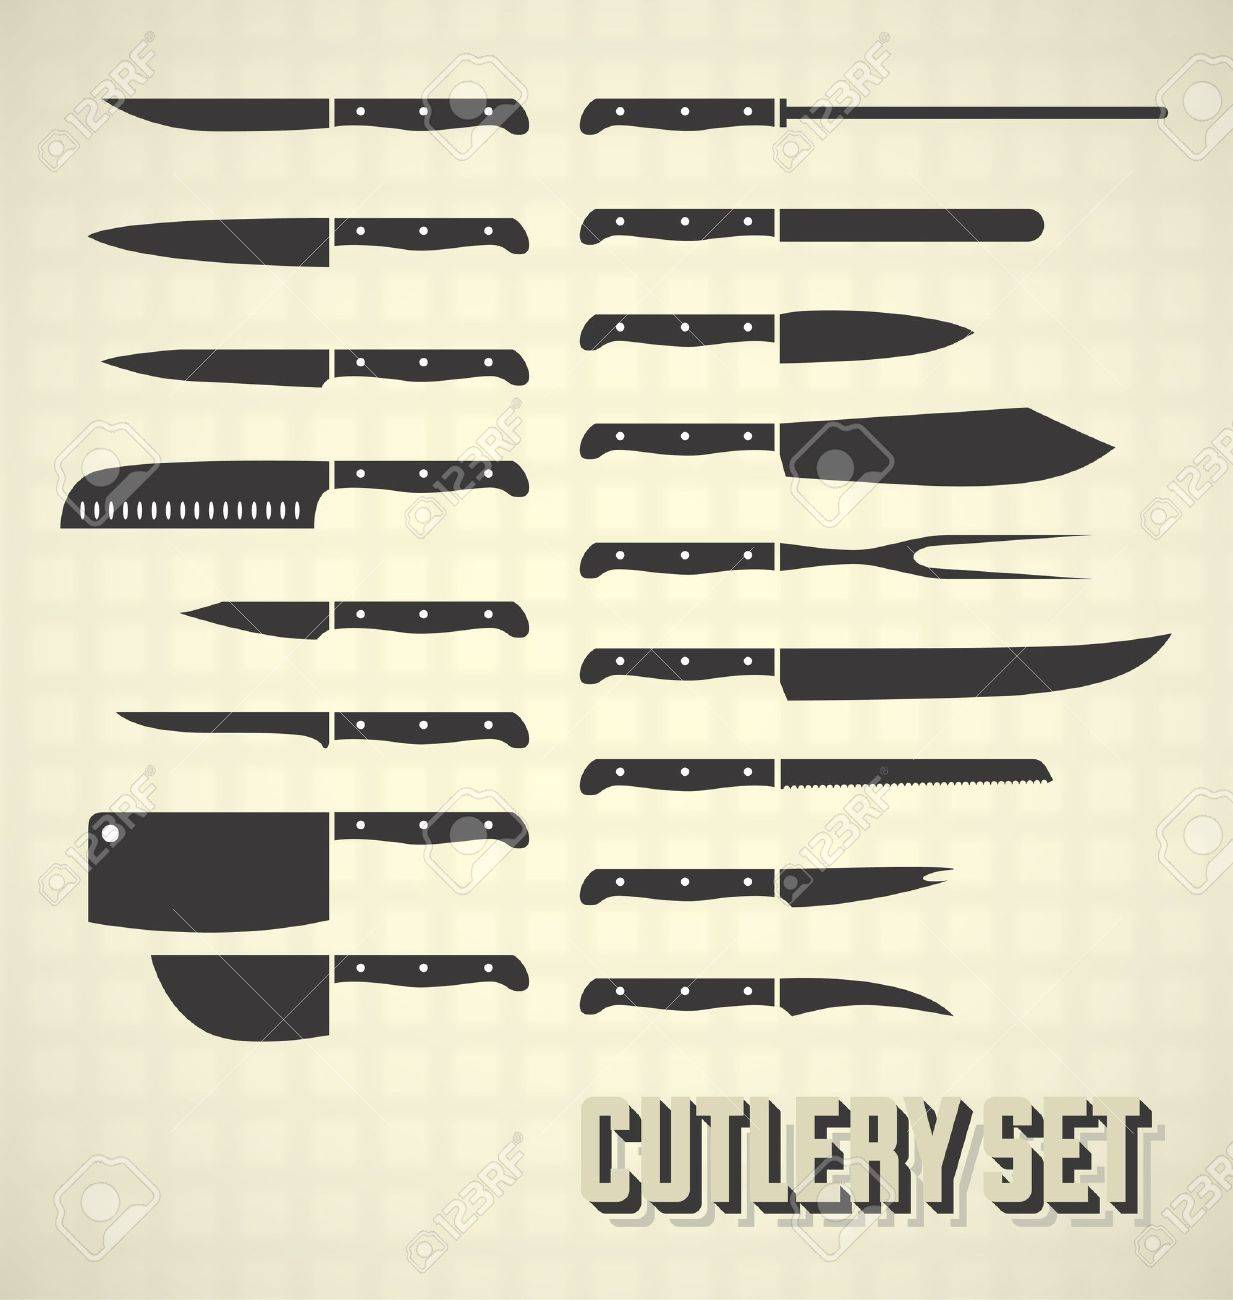 94 460 knife stock vector illustration and royalty free knife clipart